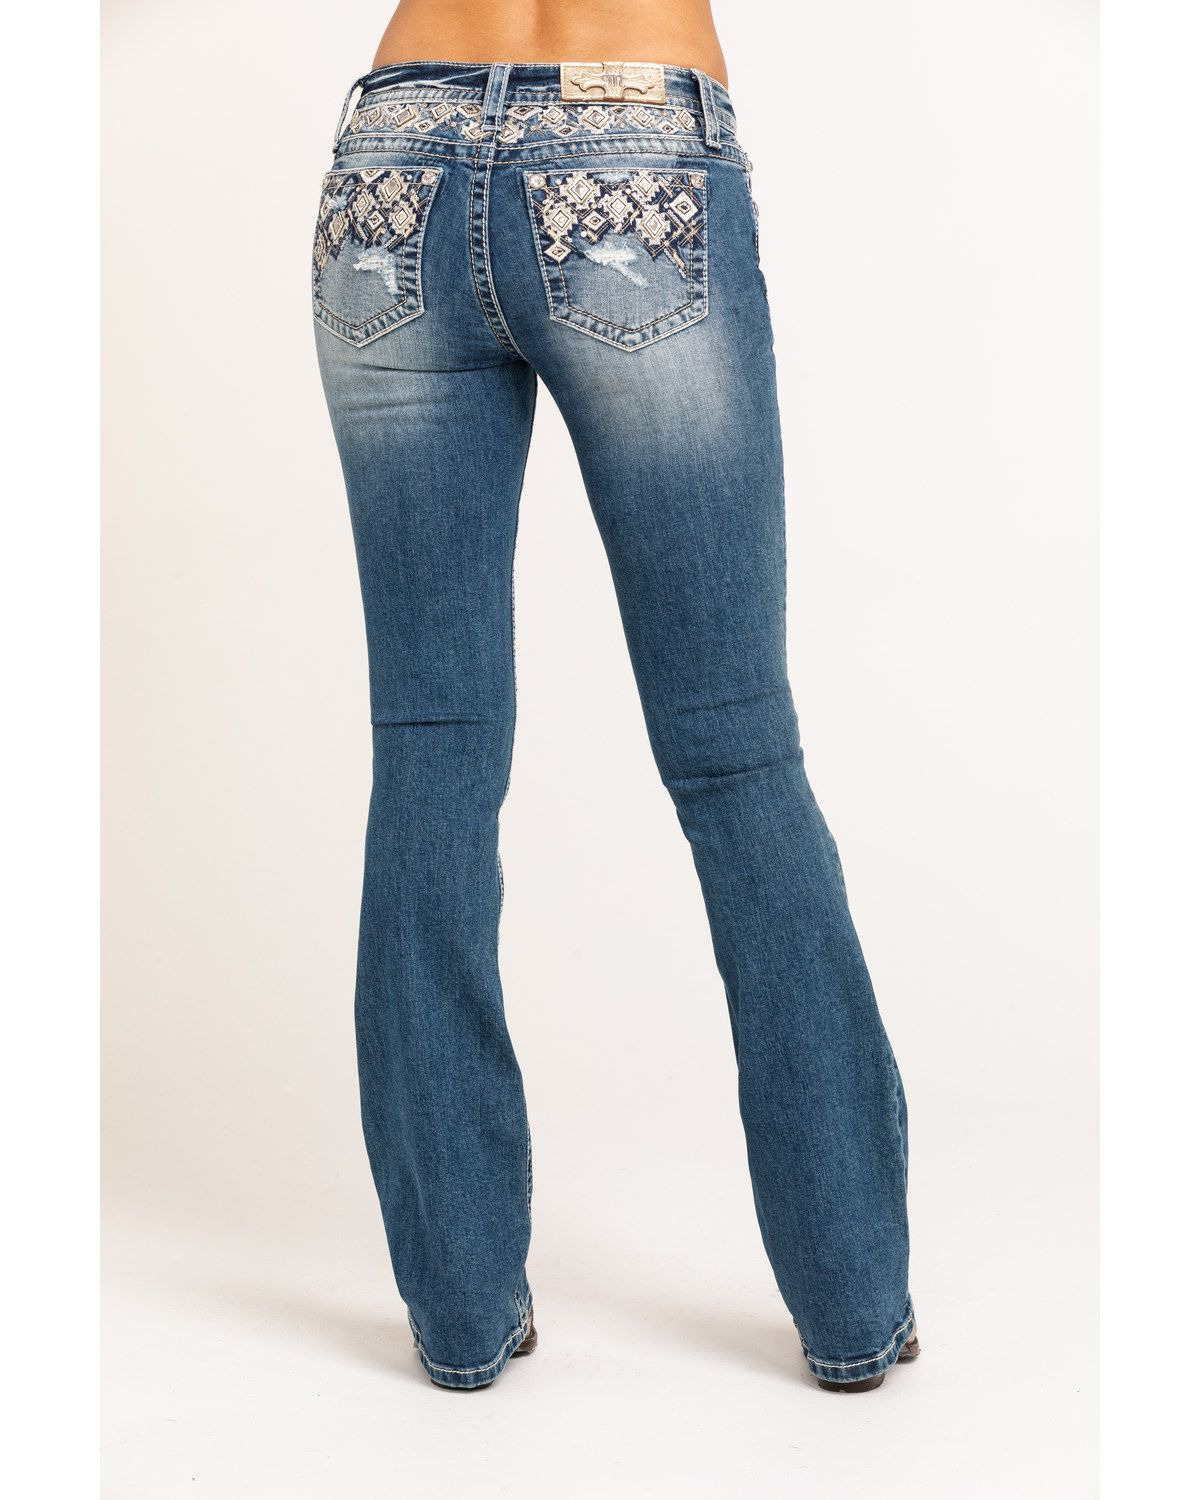 Miss Me Women's Medium Embroidered Aztec Low Rise Chloe Bootcut Jeans #aztec